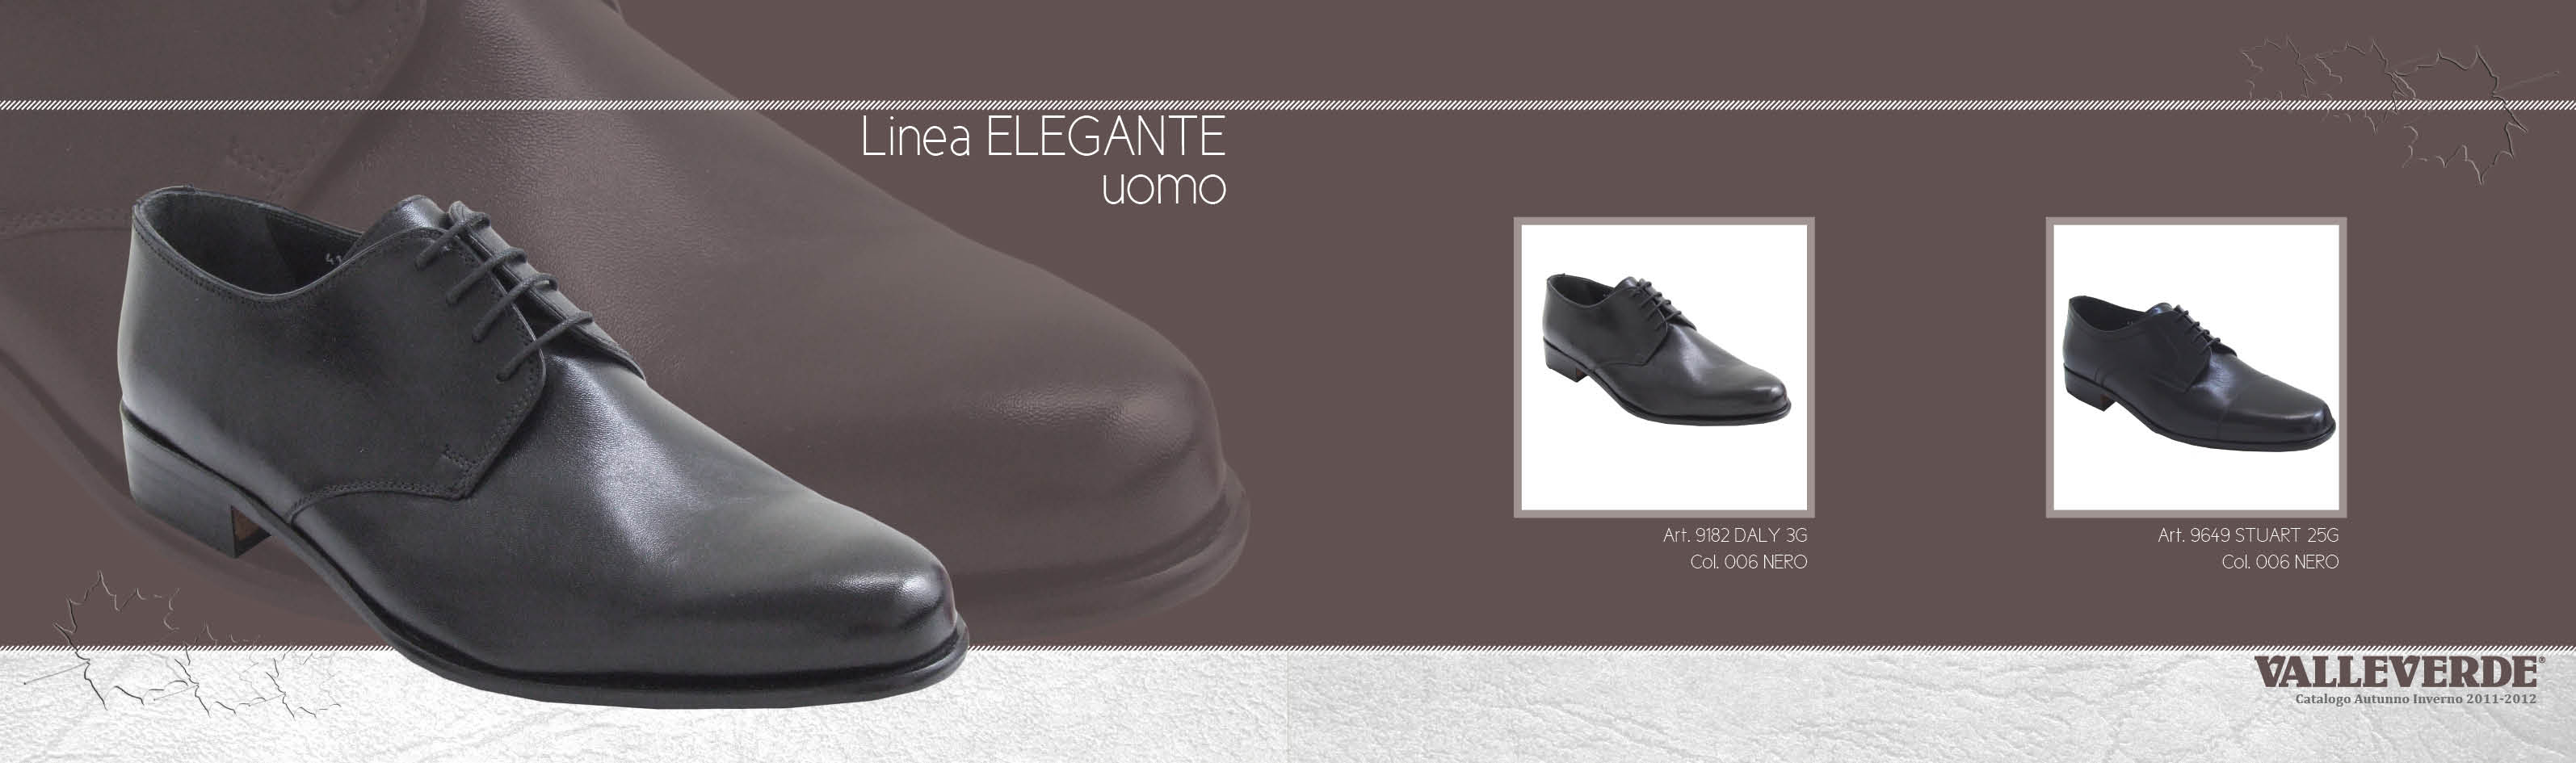 Valleverde-shoes-new-collection-spring-summer-accessories-image-4